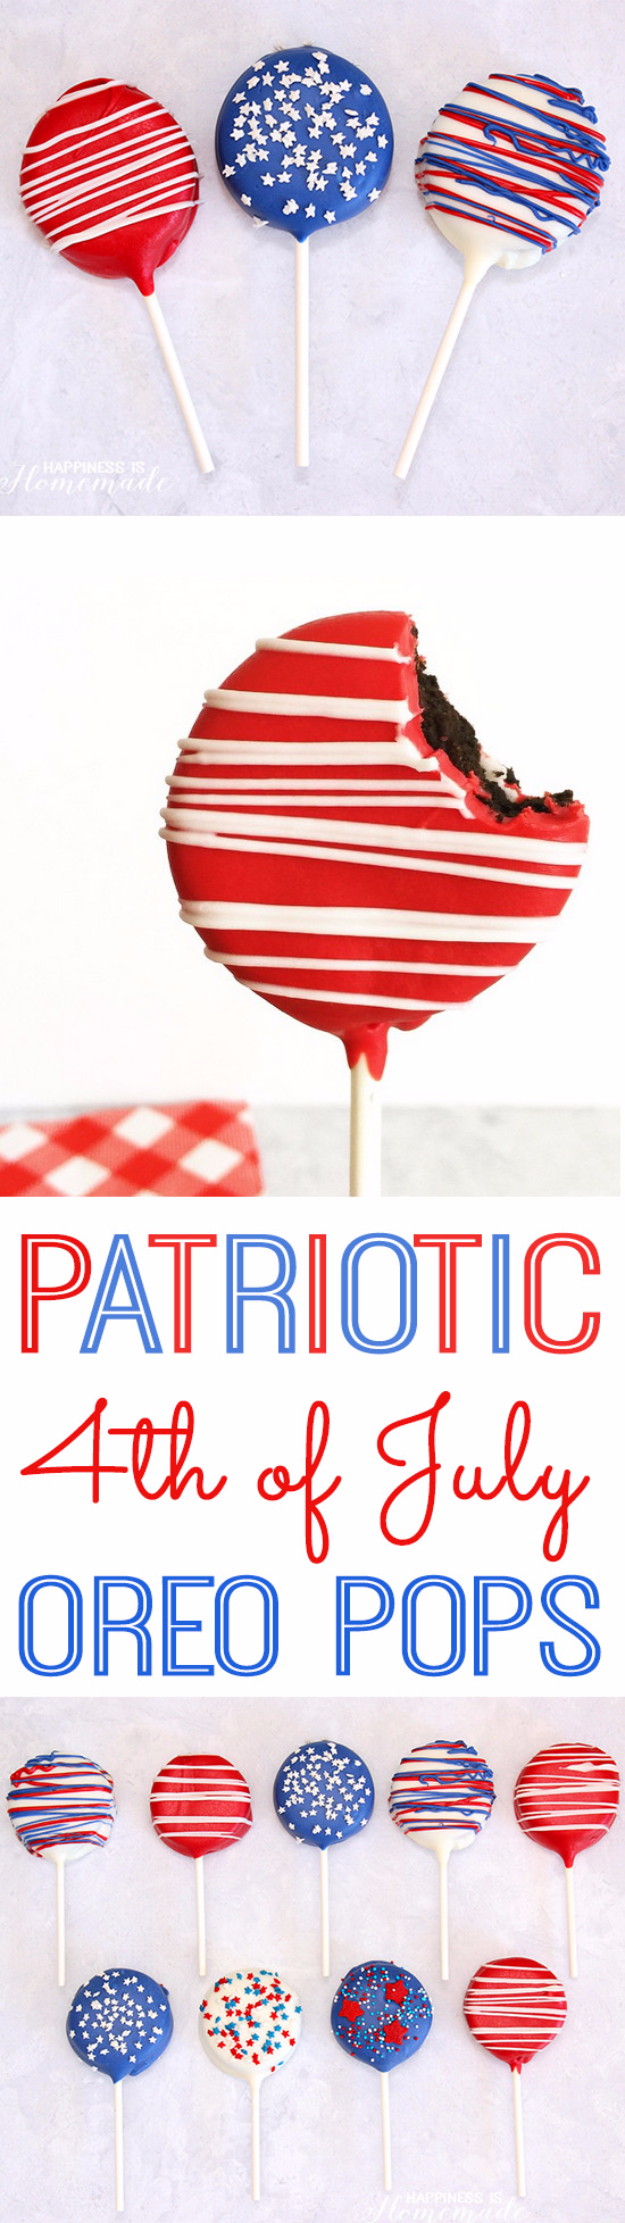 Best Fourth of July Food and Drink Ideas - Patriotic Oreo Pops for 4th of July - BBQ on the 4th with these Desserts, Recipes and Ideas for Healthy Appetizers, Party Trays, Easy Meals for a Crowd and Fun Drink Ideas